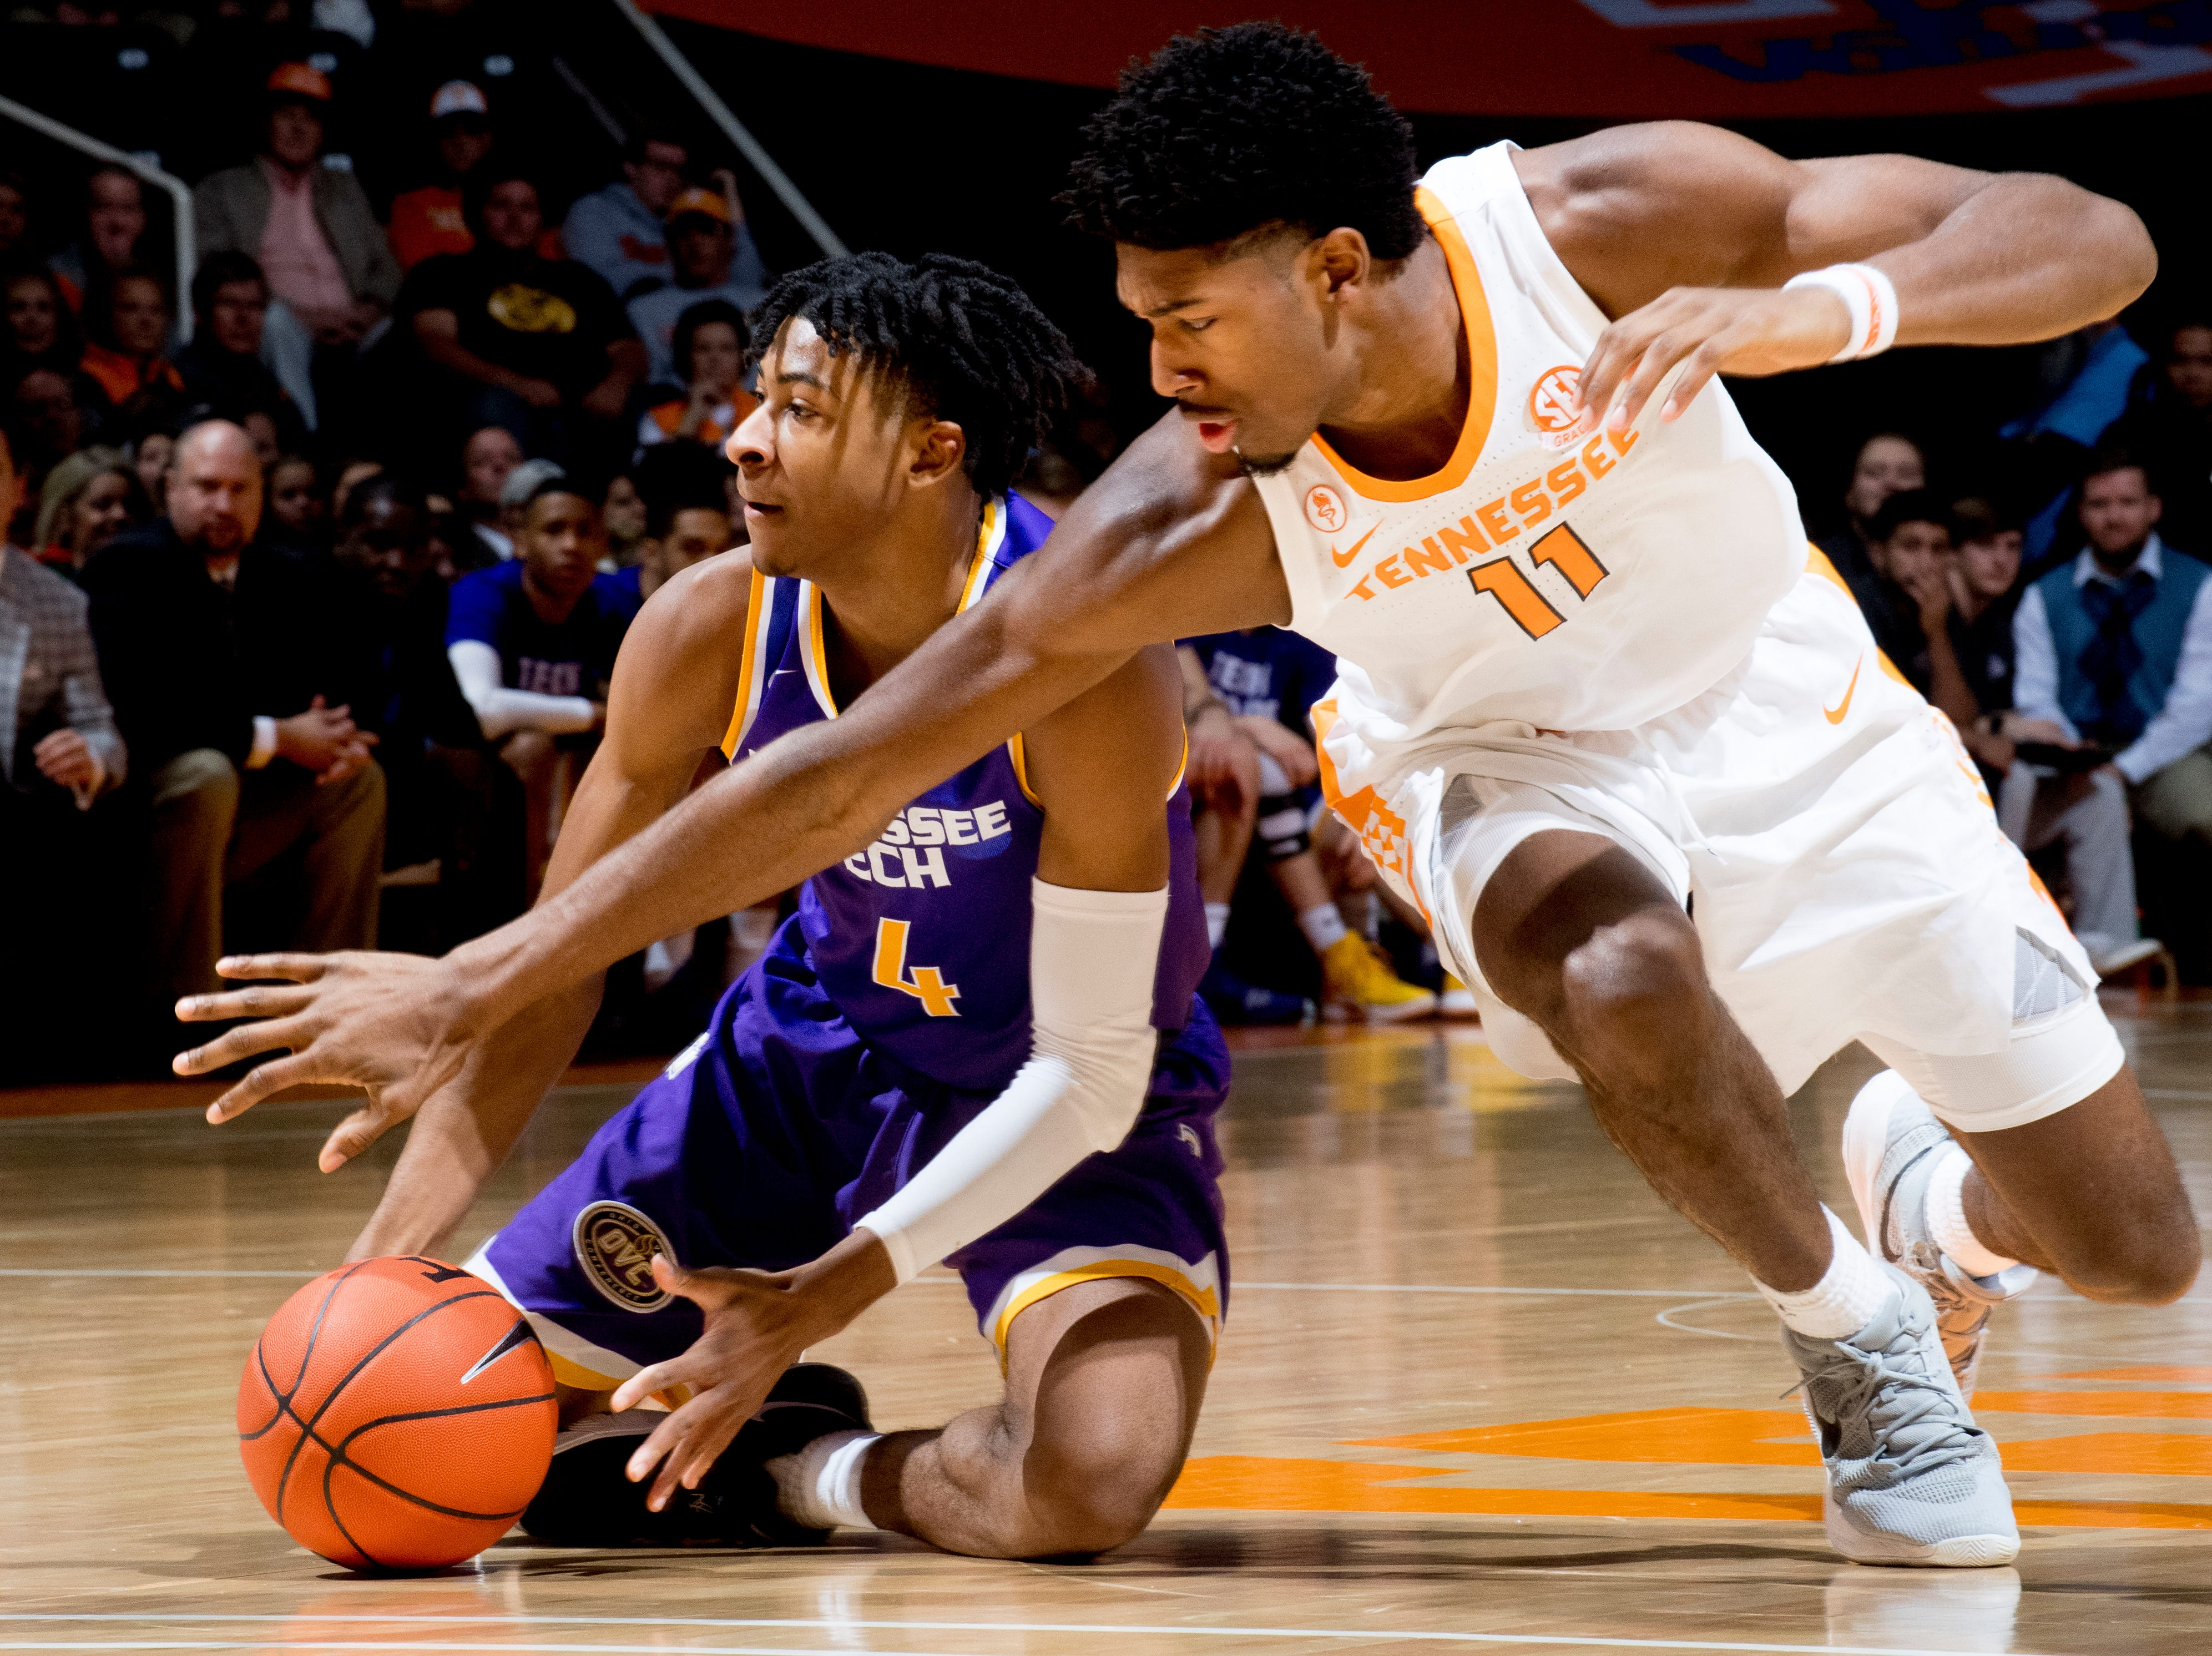 Tennessee Tech guard Jr. Clay (4) and Tennessee forward Kyle Alexander (11) chase a loose ball during a game between Tennessee and Tennessee Tech at Thompson-Boling Arena in Knoxville, Tennessee on Saturday, December 29, 2018.